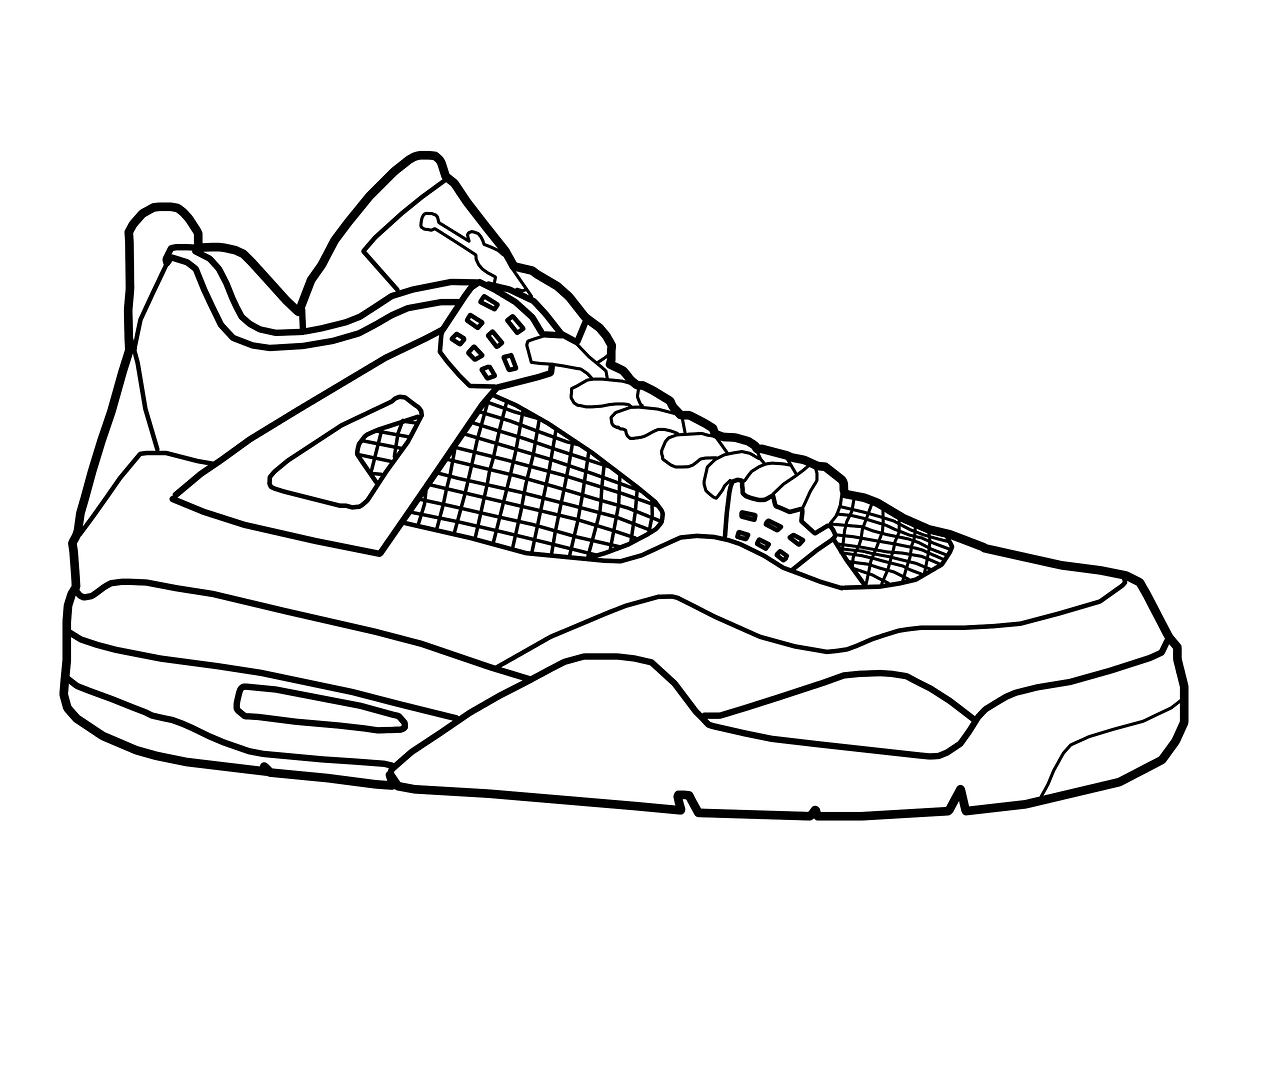 shoe coloring shoe coloring pages to download and print for free coloring shoe